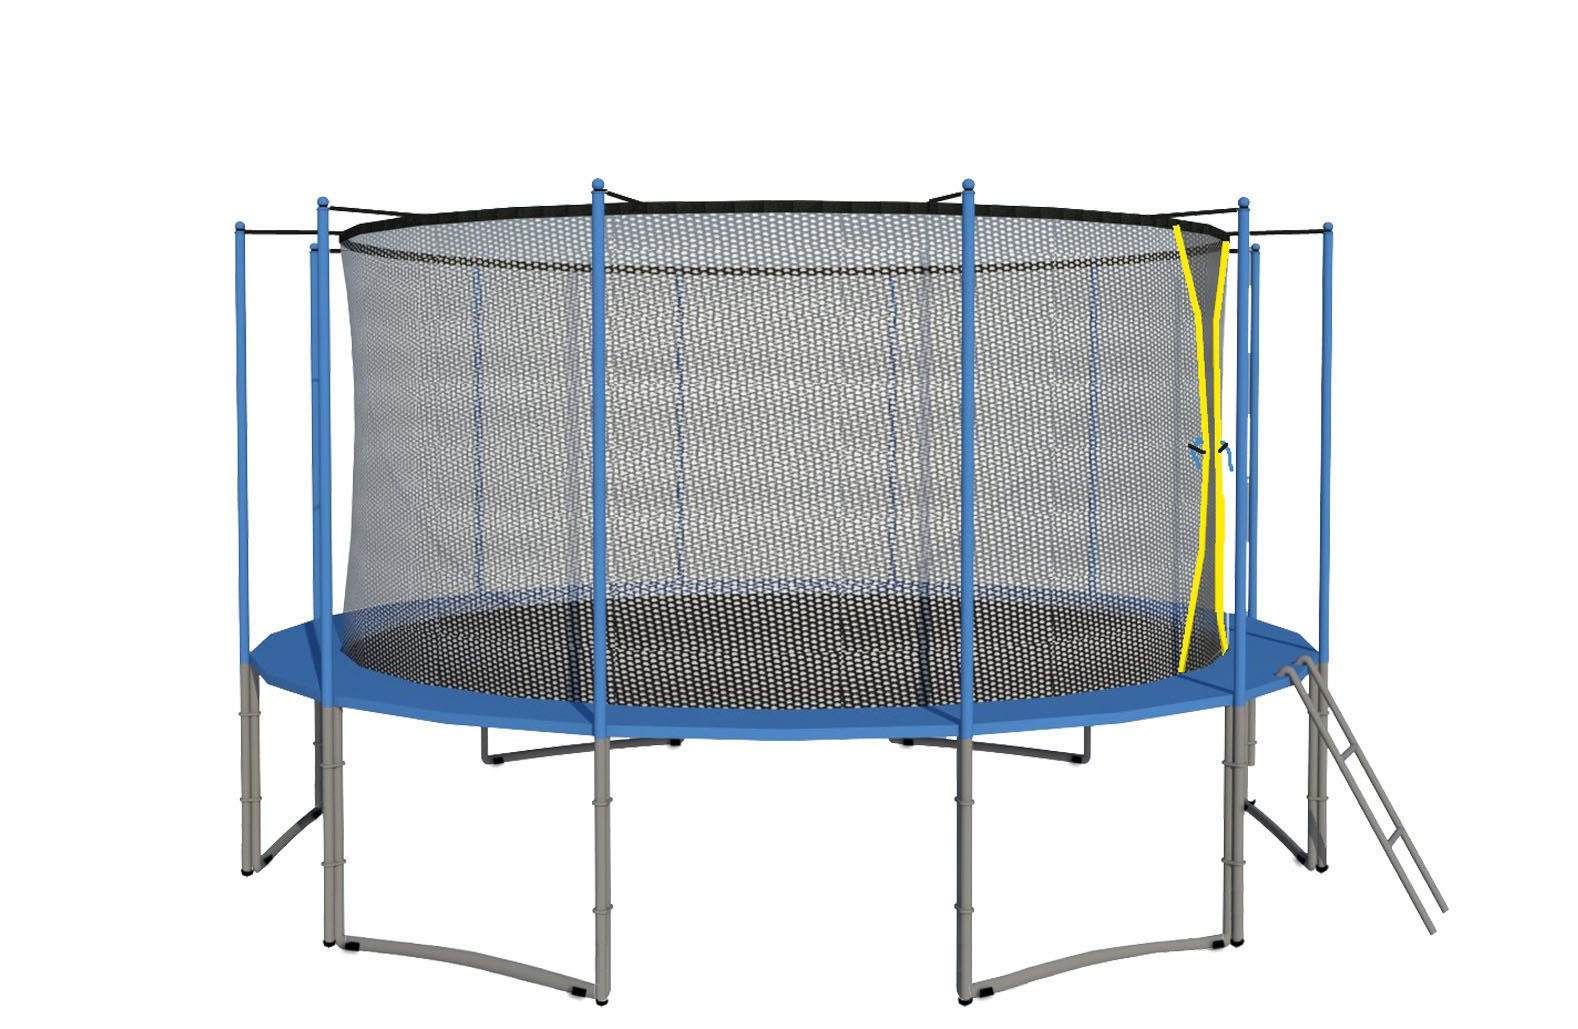 ExacMe 16' Ft 6W Legs Trampoline w/ Safety Pad and Enclosure Net and Ladder All-in-one Combo Set C16